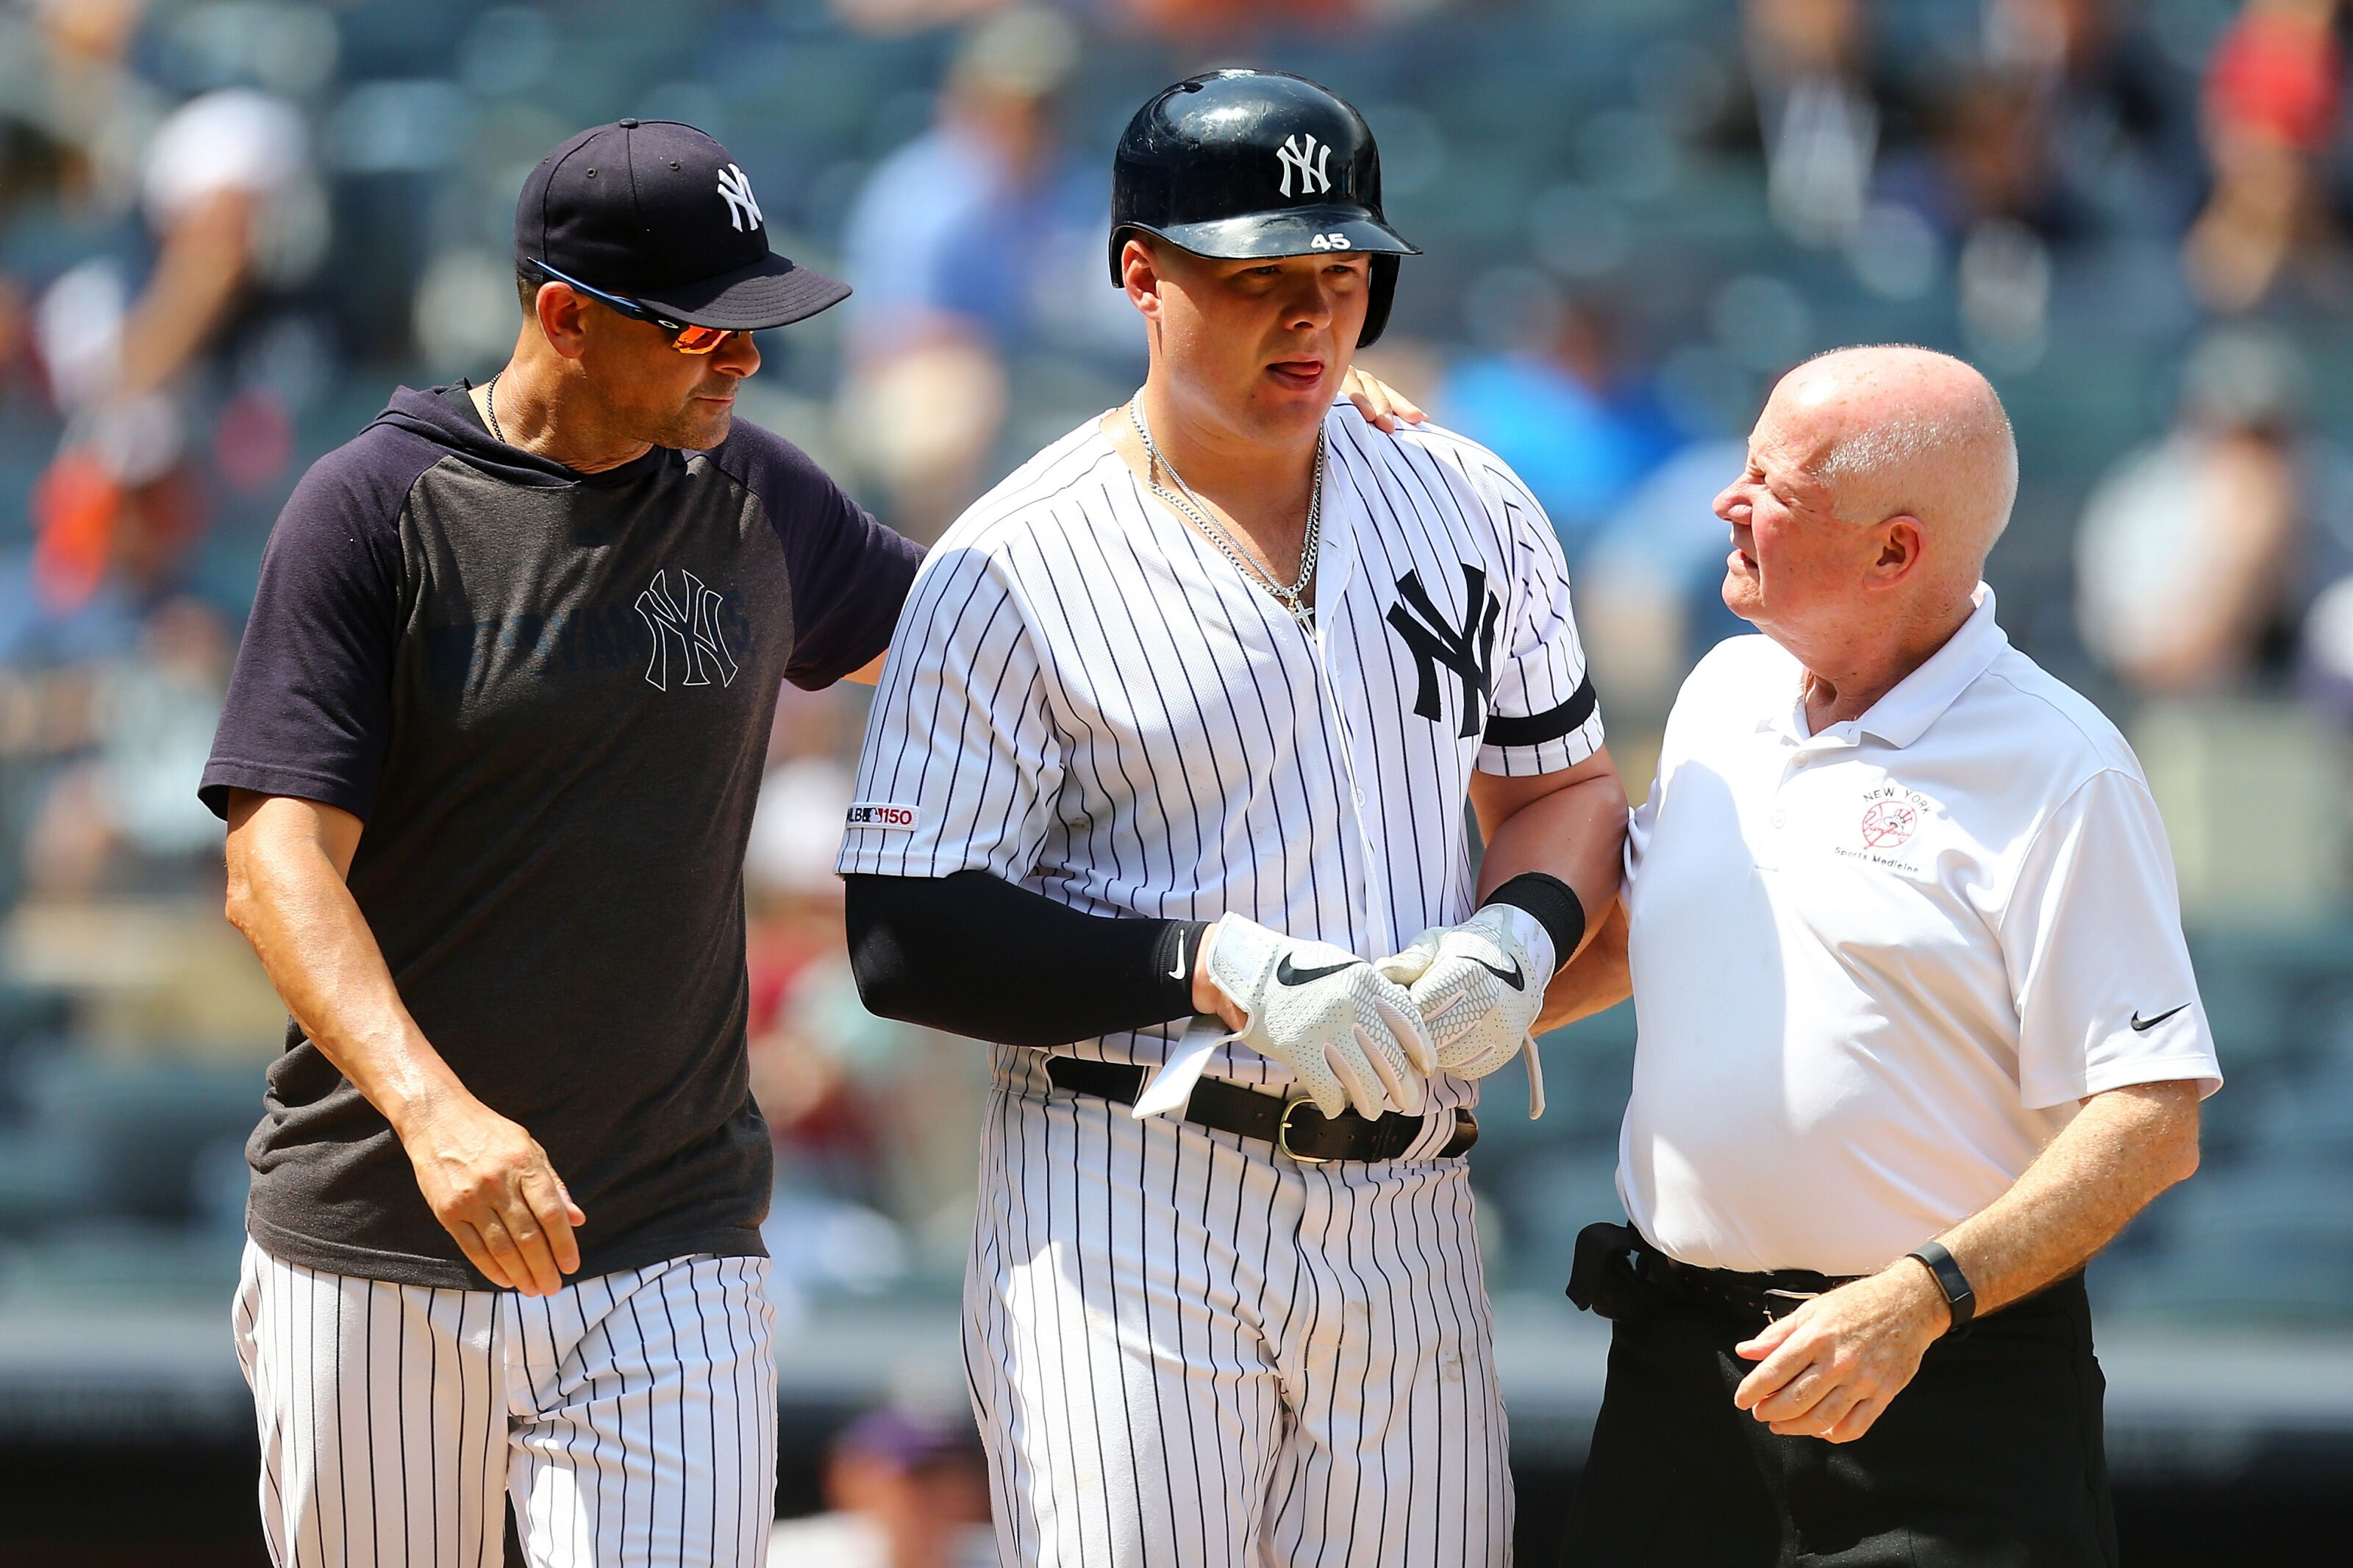 Yankees: Luke Voit is expected to begin a rehab assignment on Friday